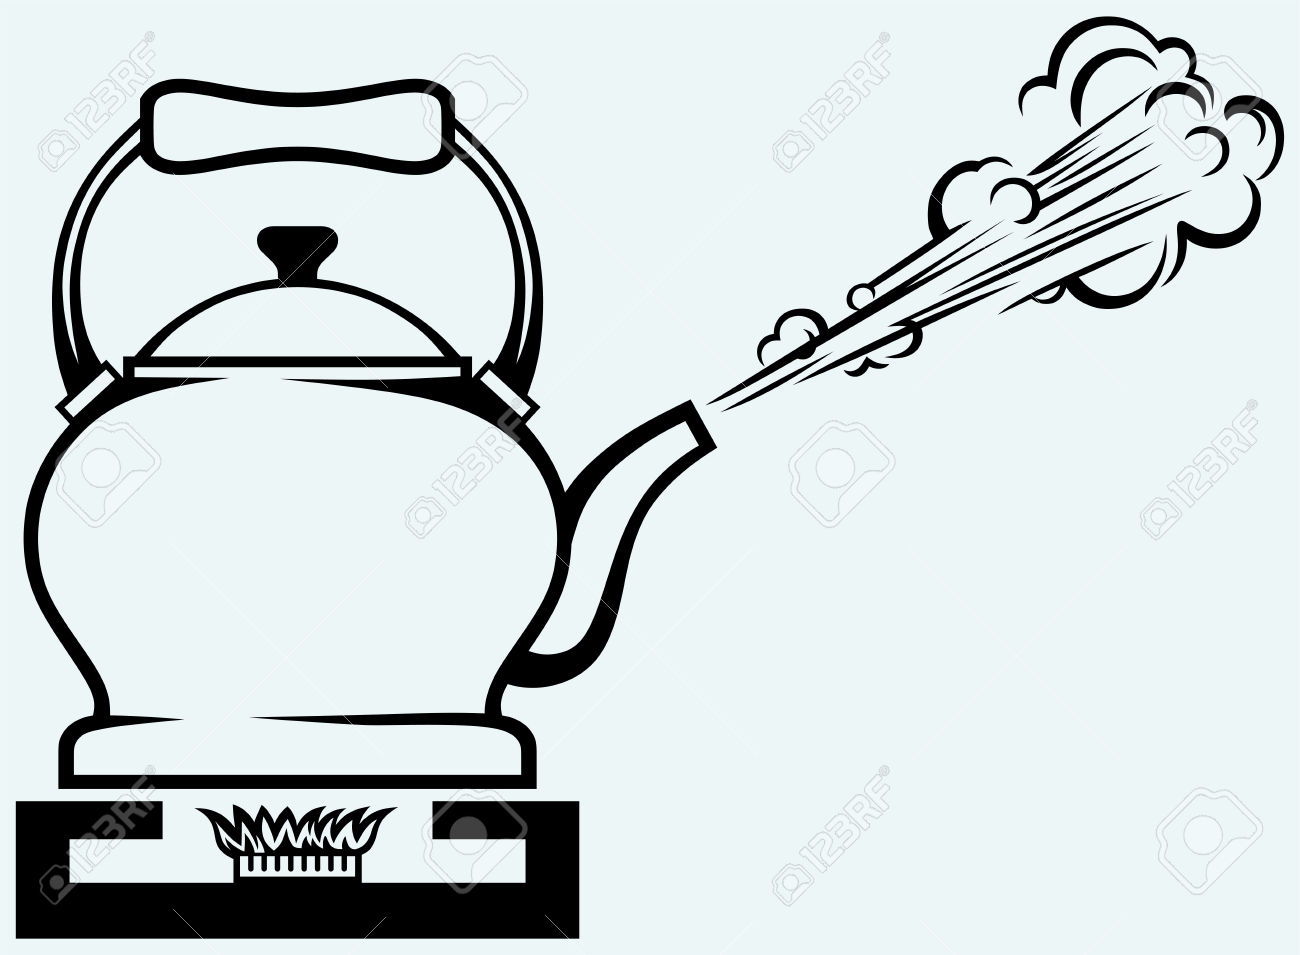 Gas clipart black and white 6 » Clipart Station.